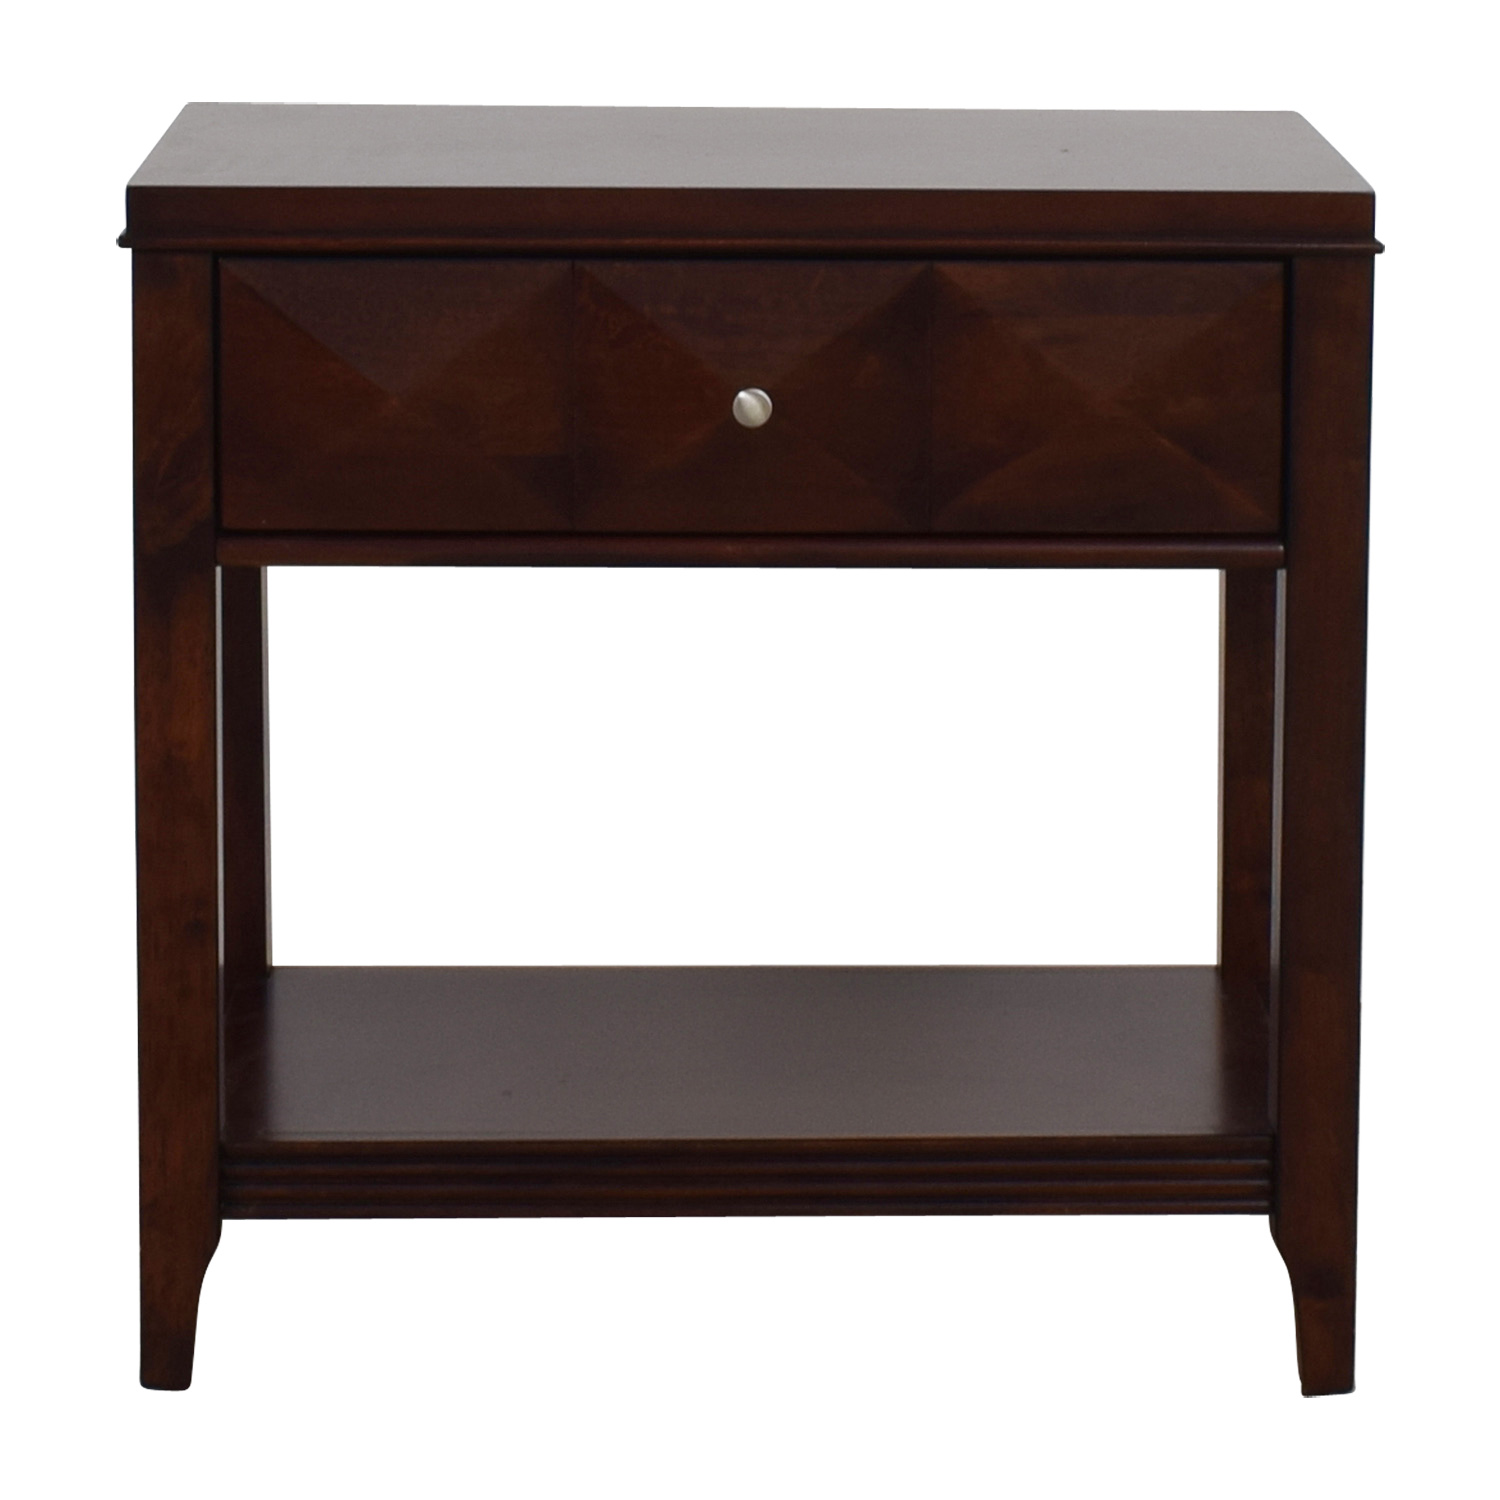 Raymour & Flanigan Raymour & Flanigan Shadow Expresso Single Drawer Nightstand second hand